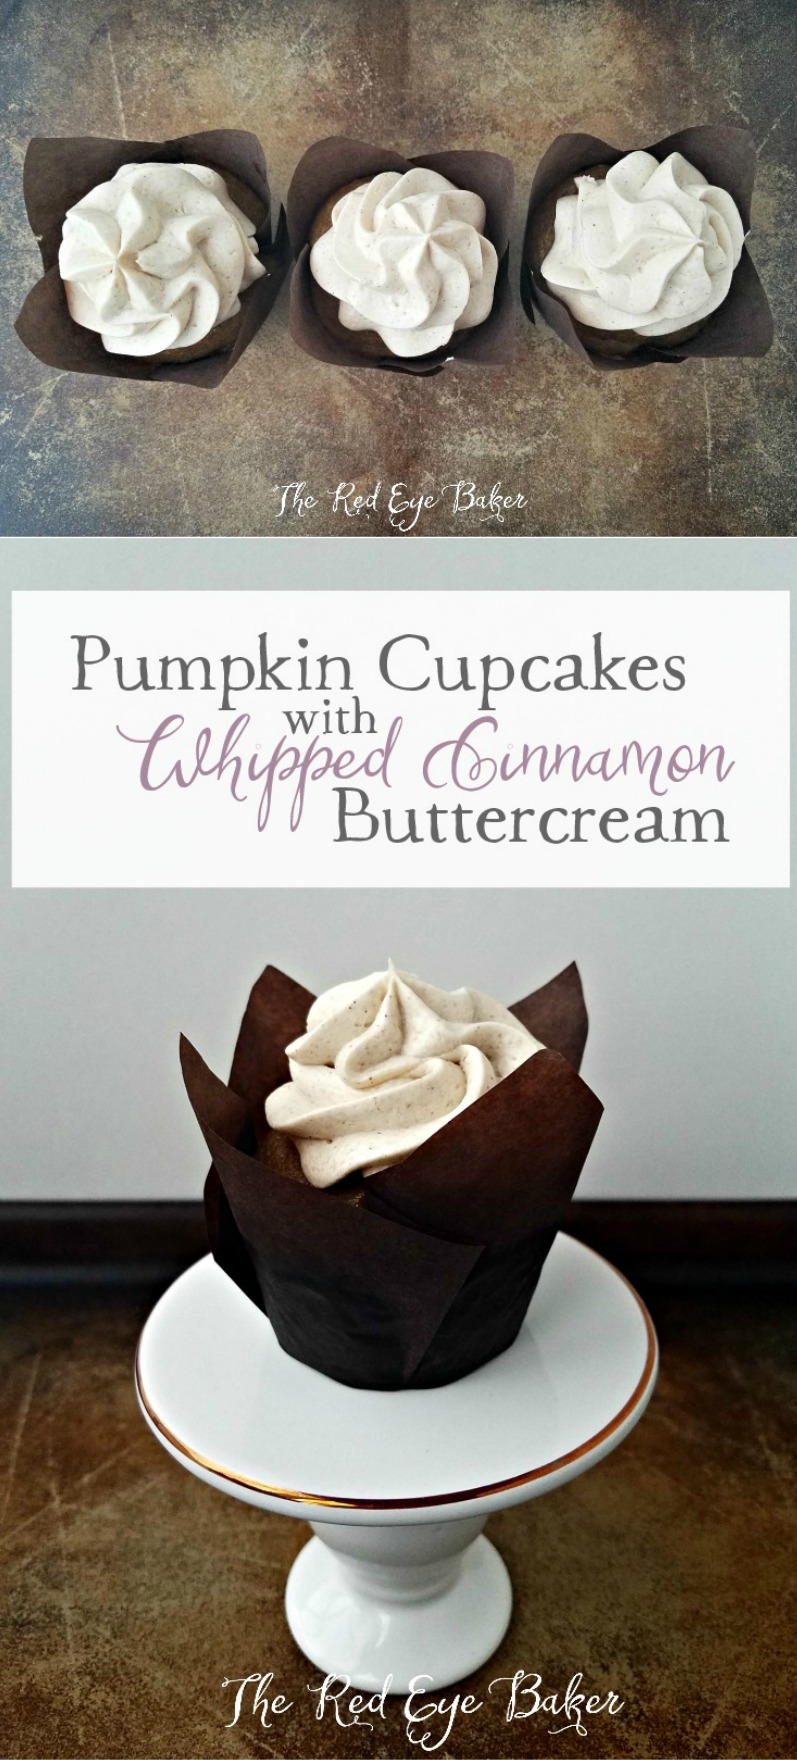 Pumpkin Cupcakes with Whipped Cinnamon Buttercream | Welcome fall into your kitchen with these perfectly spiced Pumpkin Cupcakes with delicious and fluffy Whipped Cinnamon Buttercream.